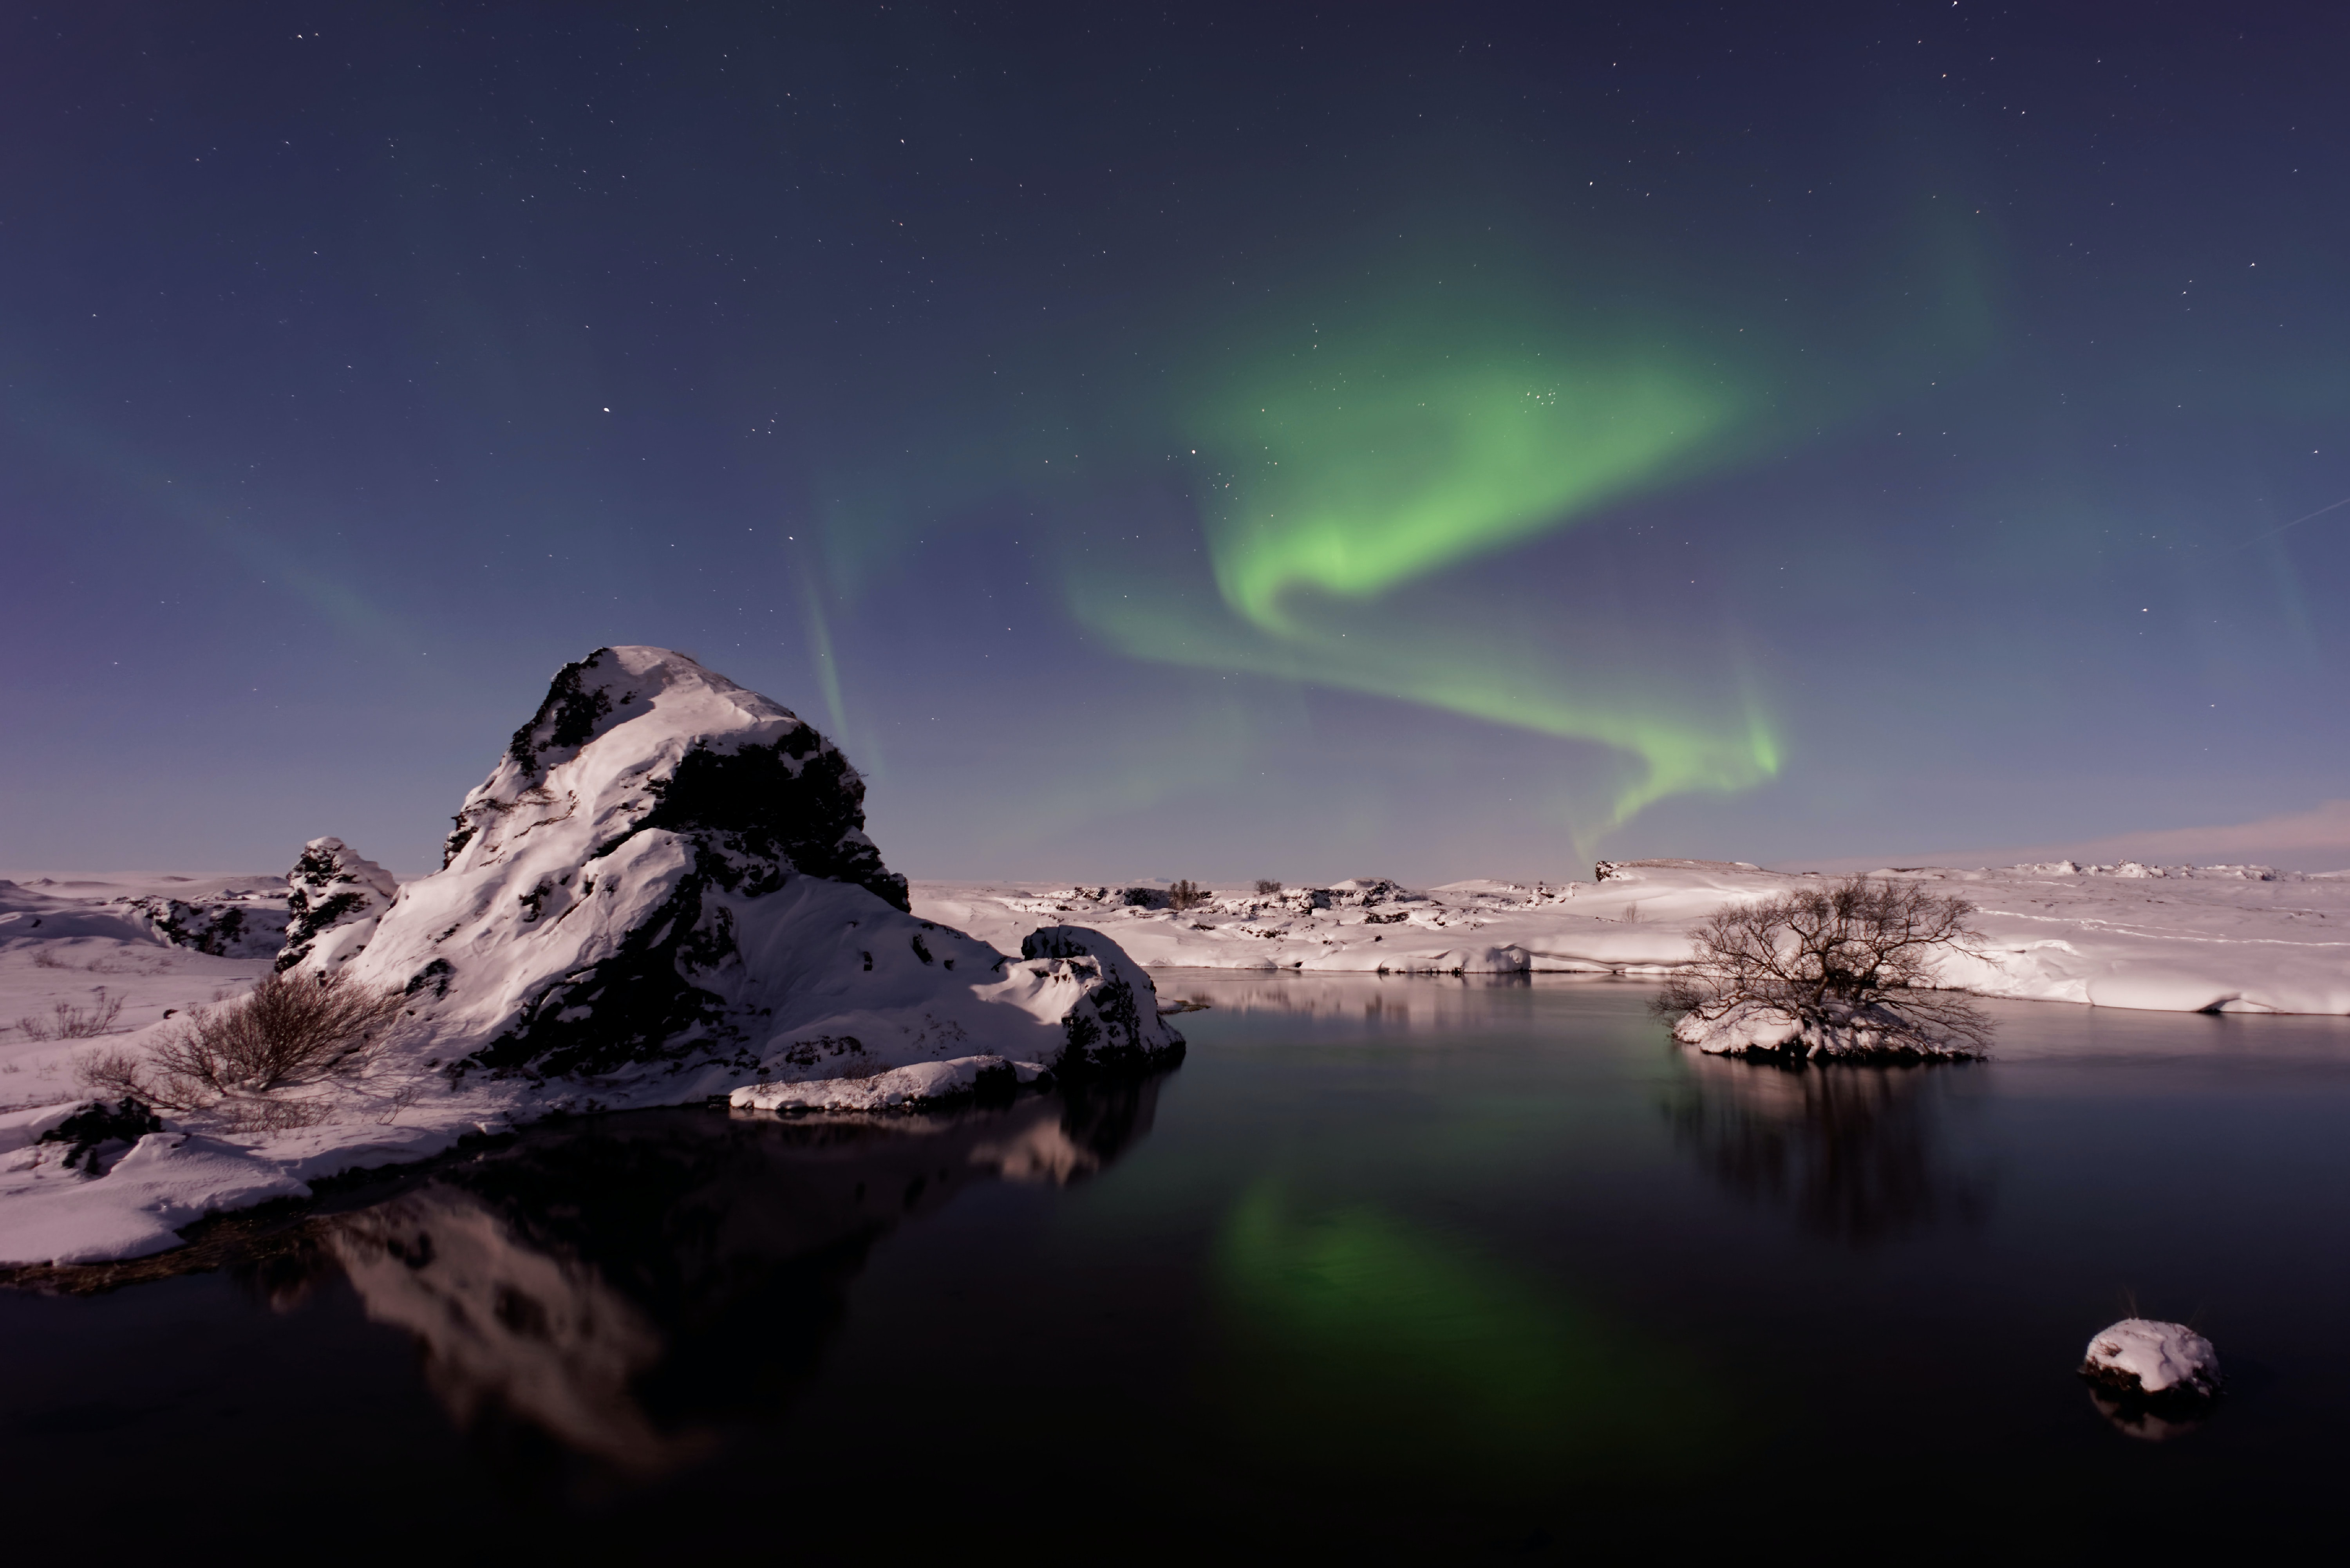 The Northern Lights casted above Mývatn, a lake in Iceland